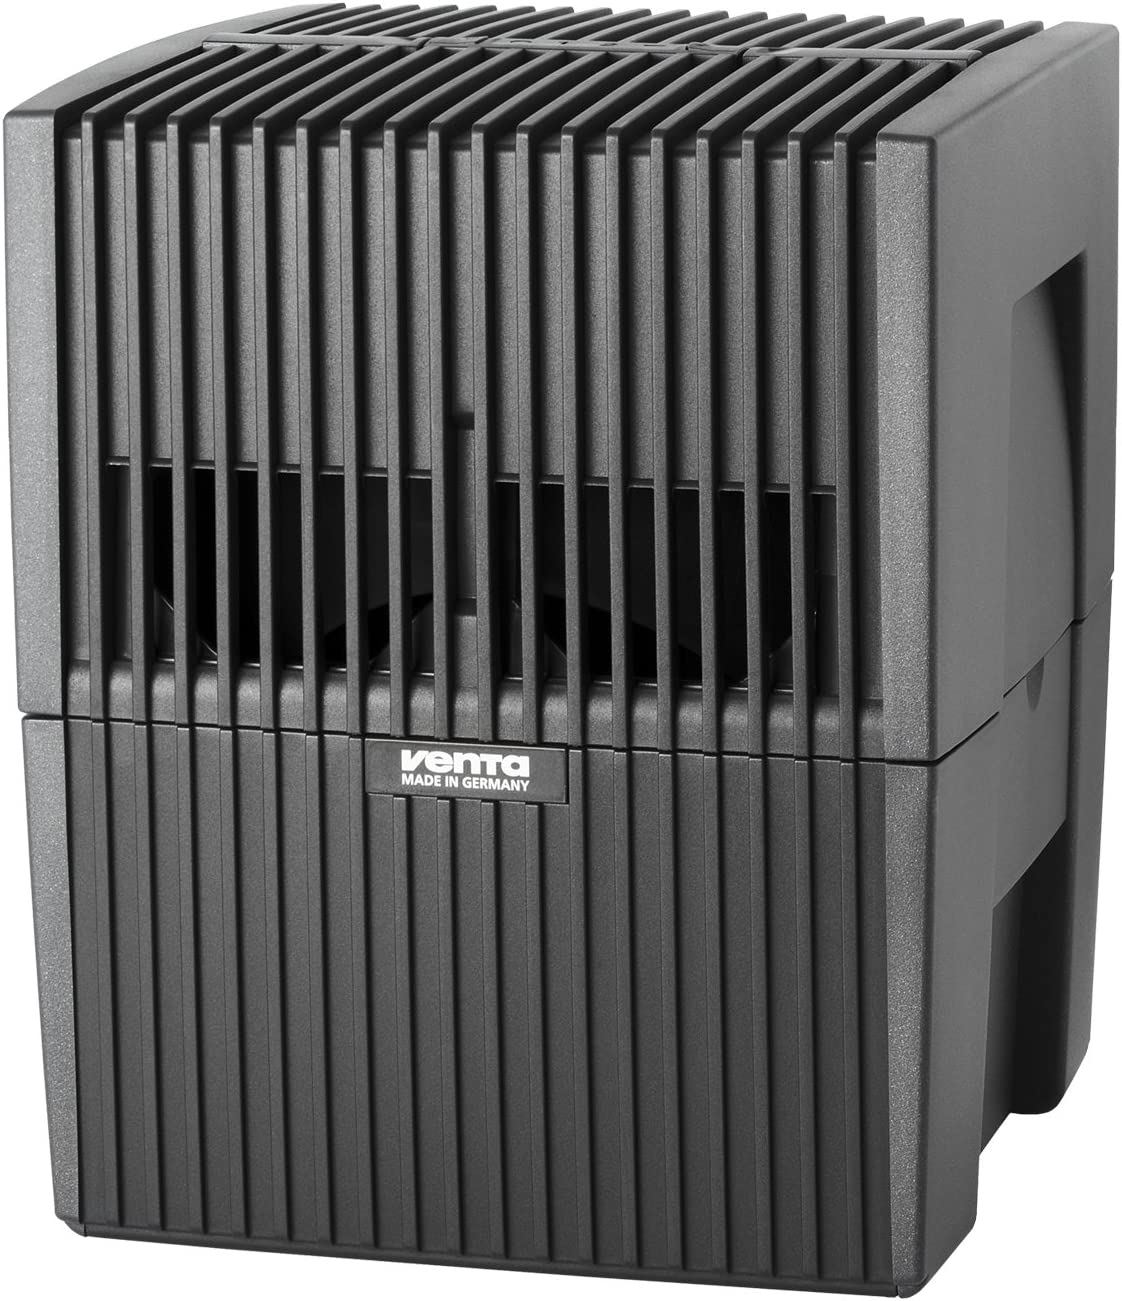 Venta LW15 Airwasher 2-in-1 Humidifier and Air Purifier